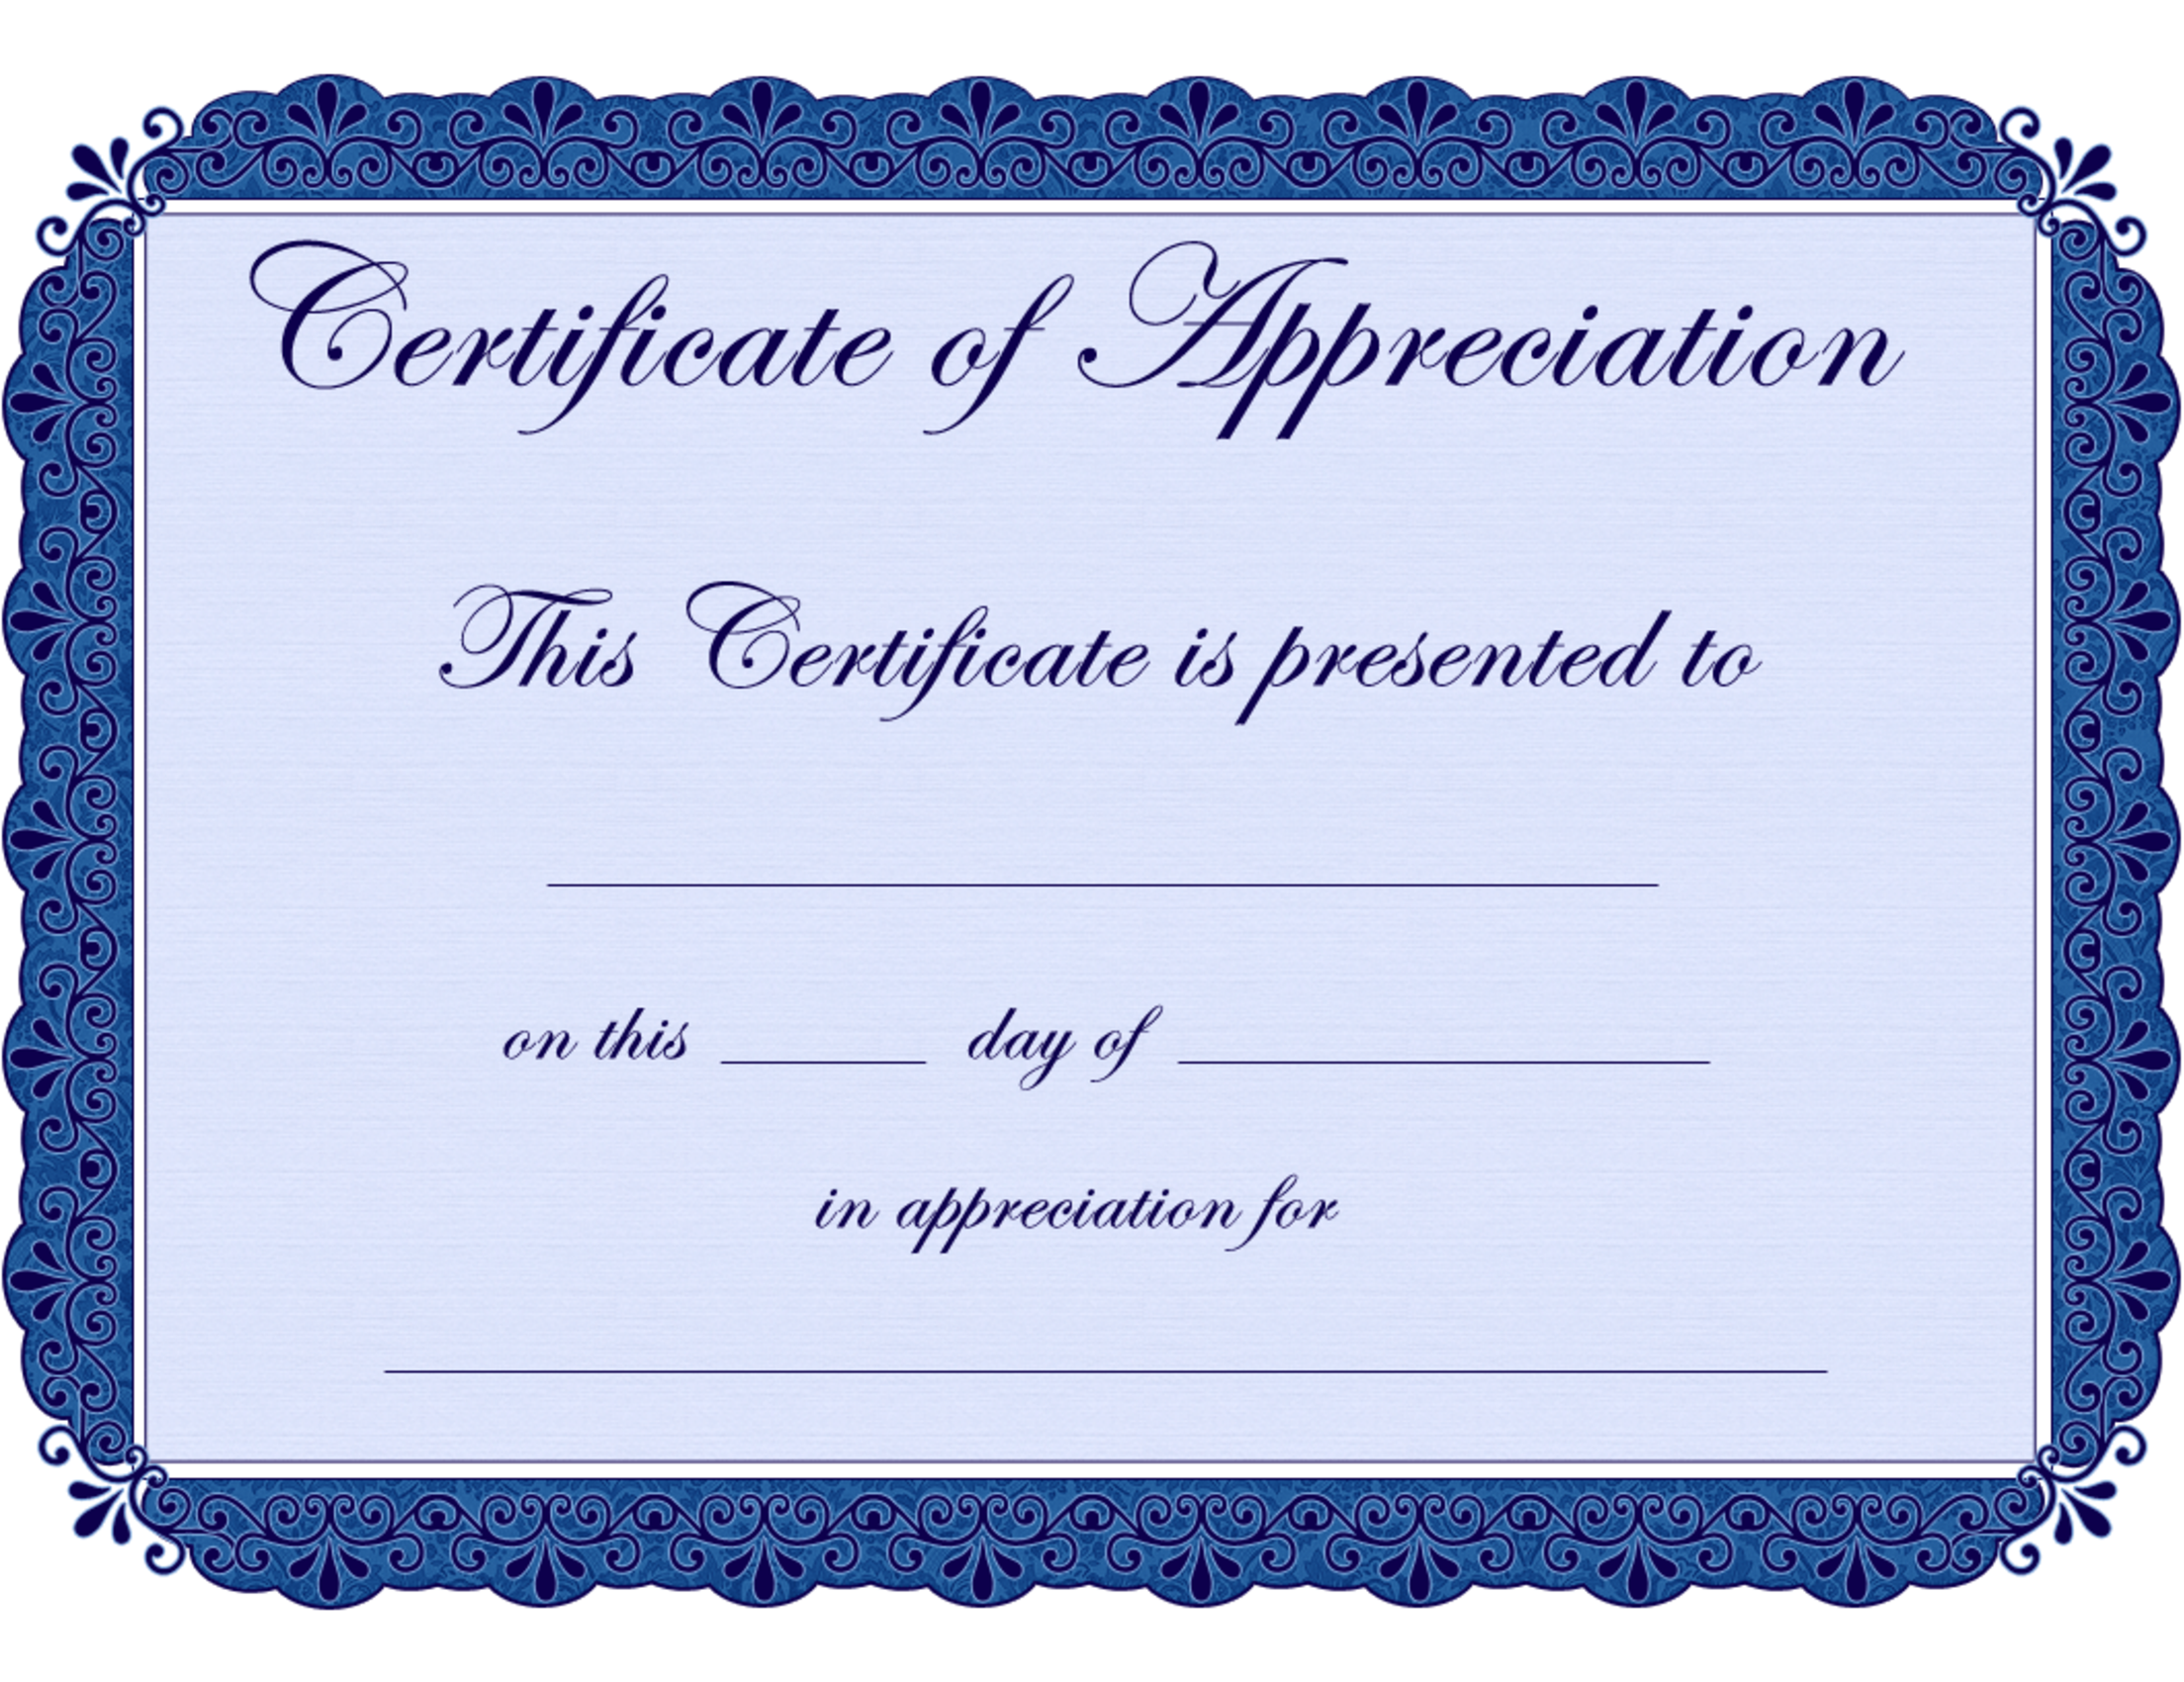 Free Printable Certificates Certificate Of Appreciation Certificate ... |  Certificate Of Appreciation | Pinterest | Free Printable Certificates, ...  Free Certificate Template